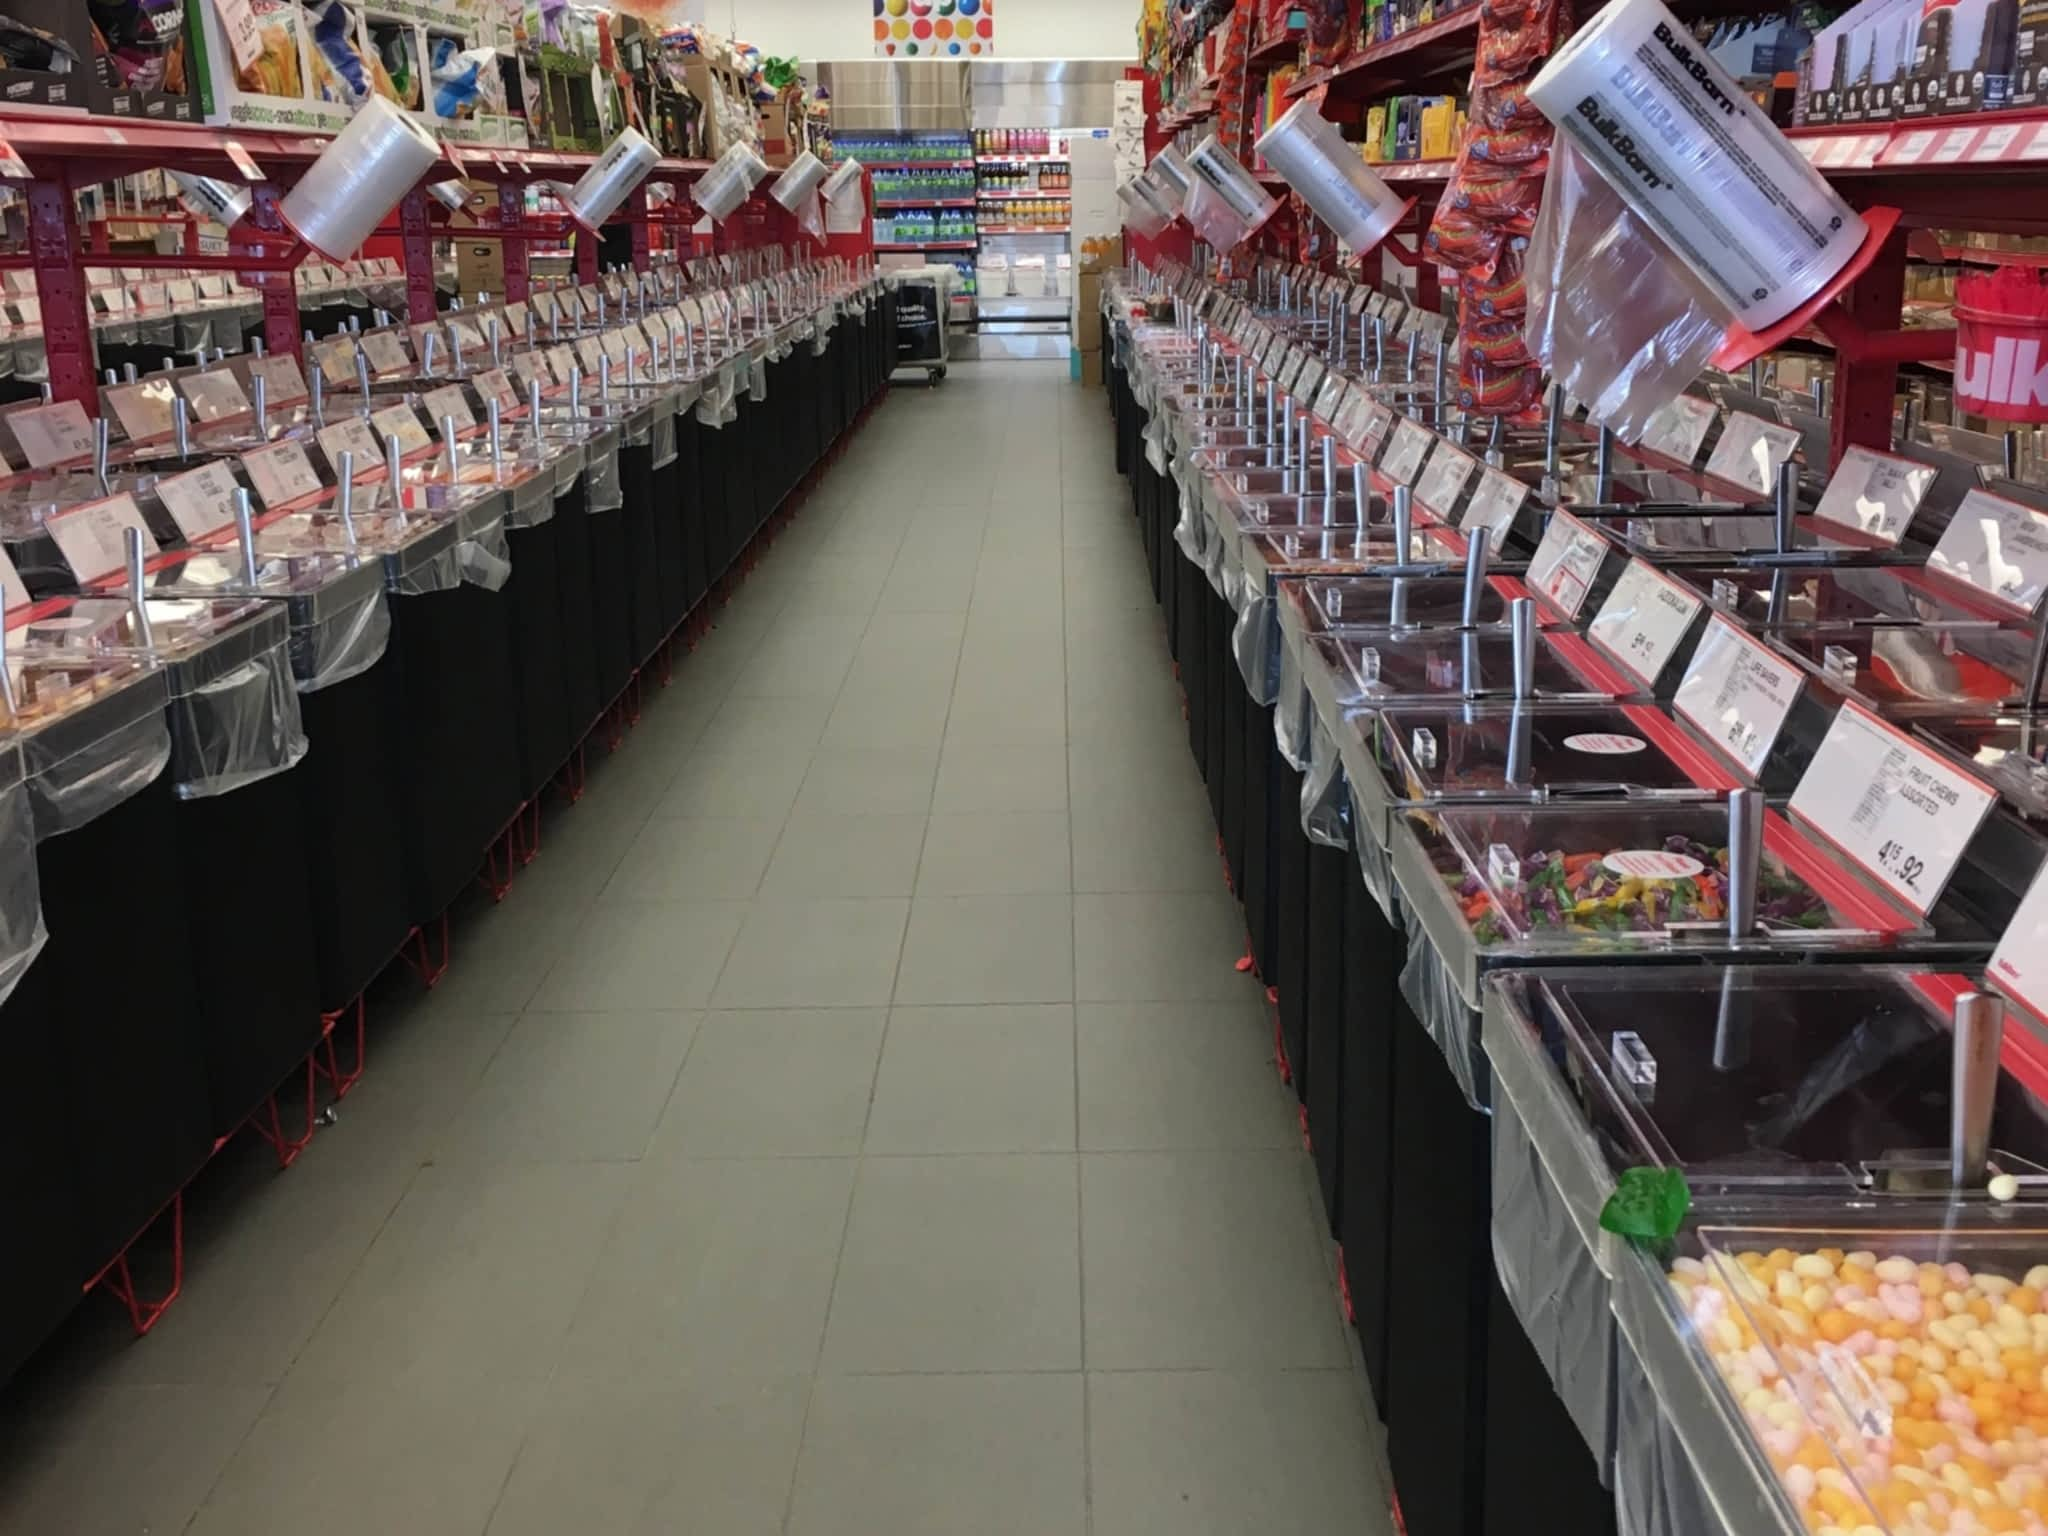 Bulk Barn - North Bay, ON - 850 McKeown Ave | Canpages